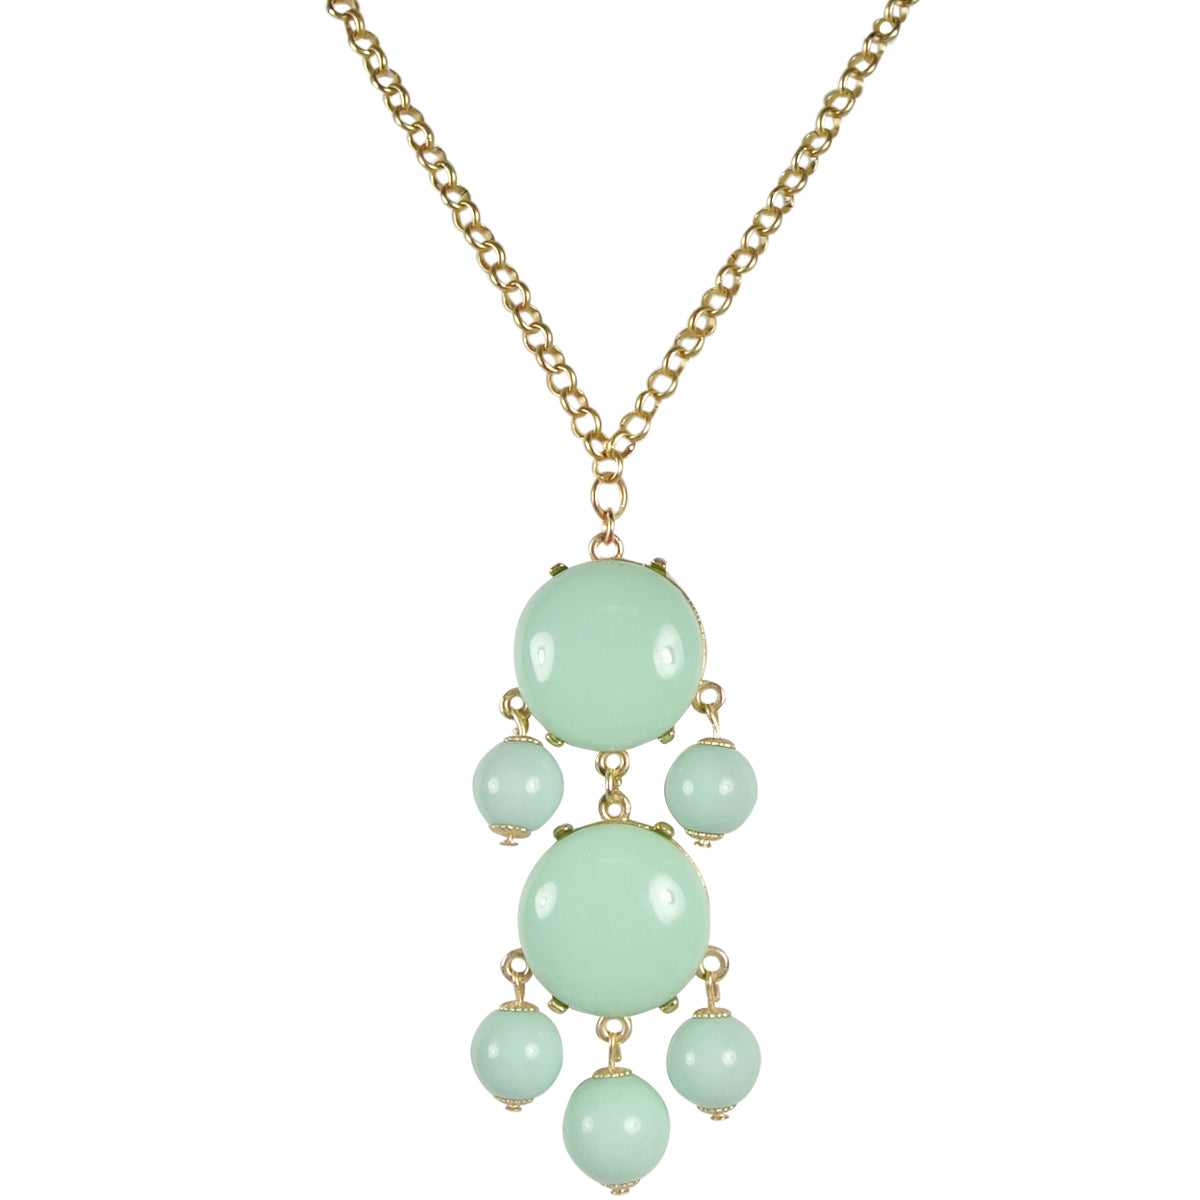 Mint Green Beaded Bubble Pendant Necklace + Pink Drop Stone Necklace [A63876, A64560]